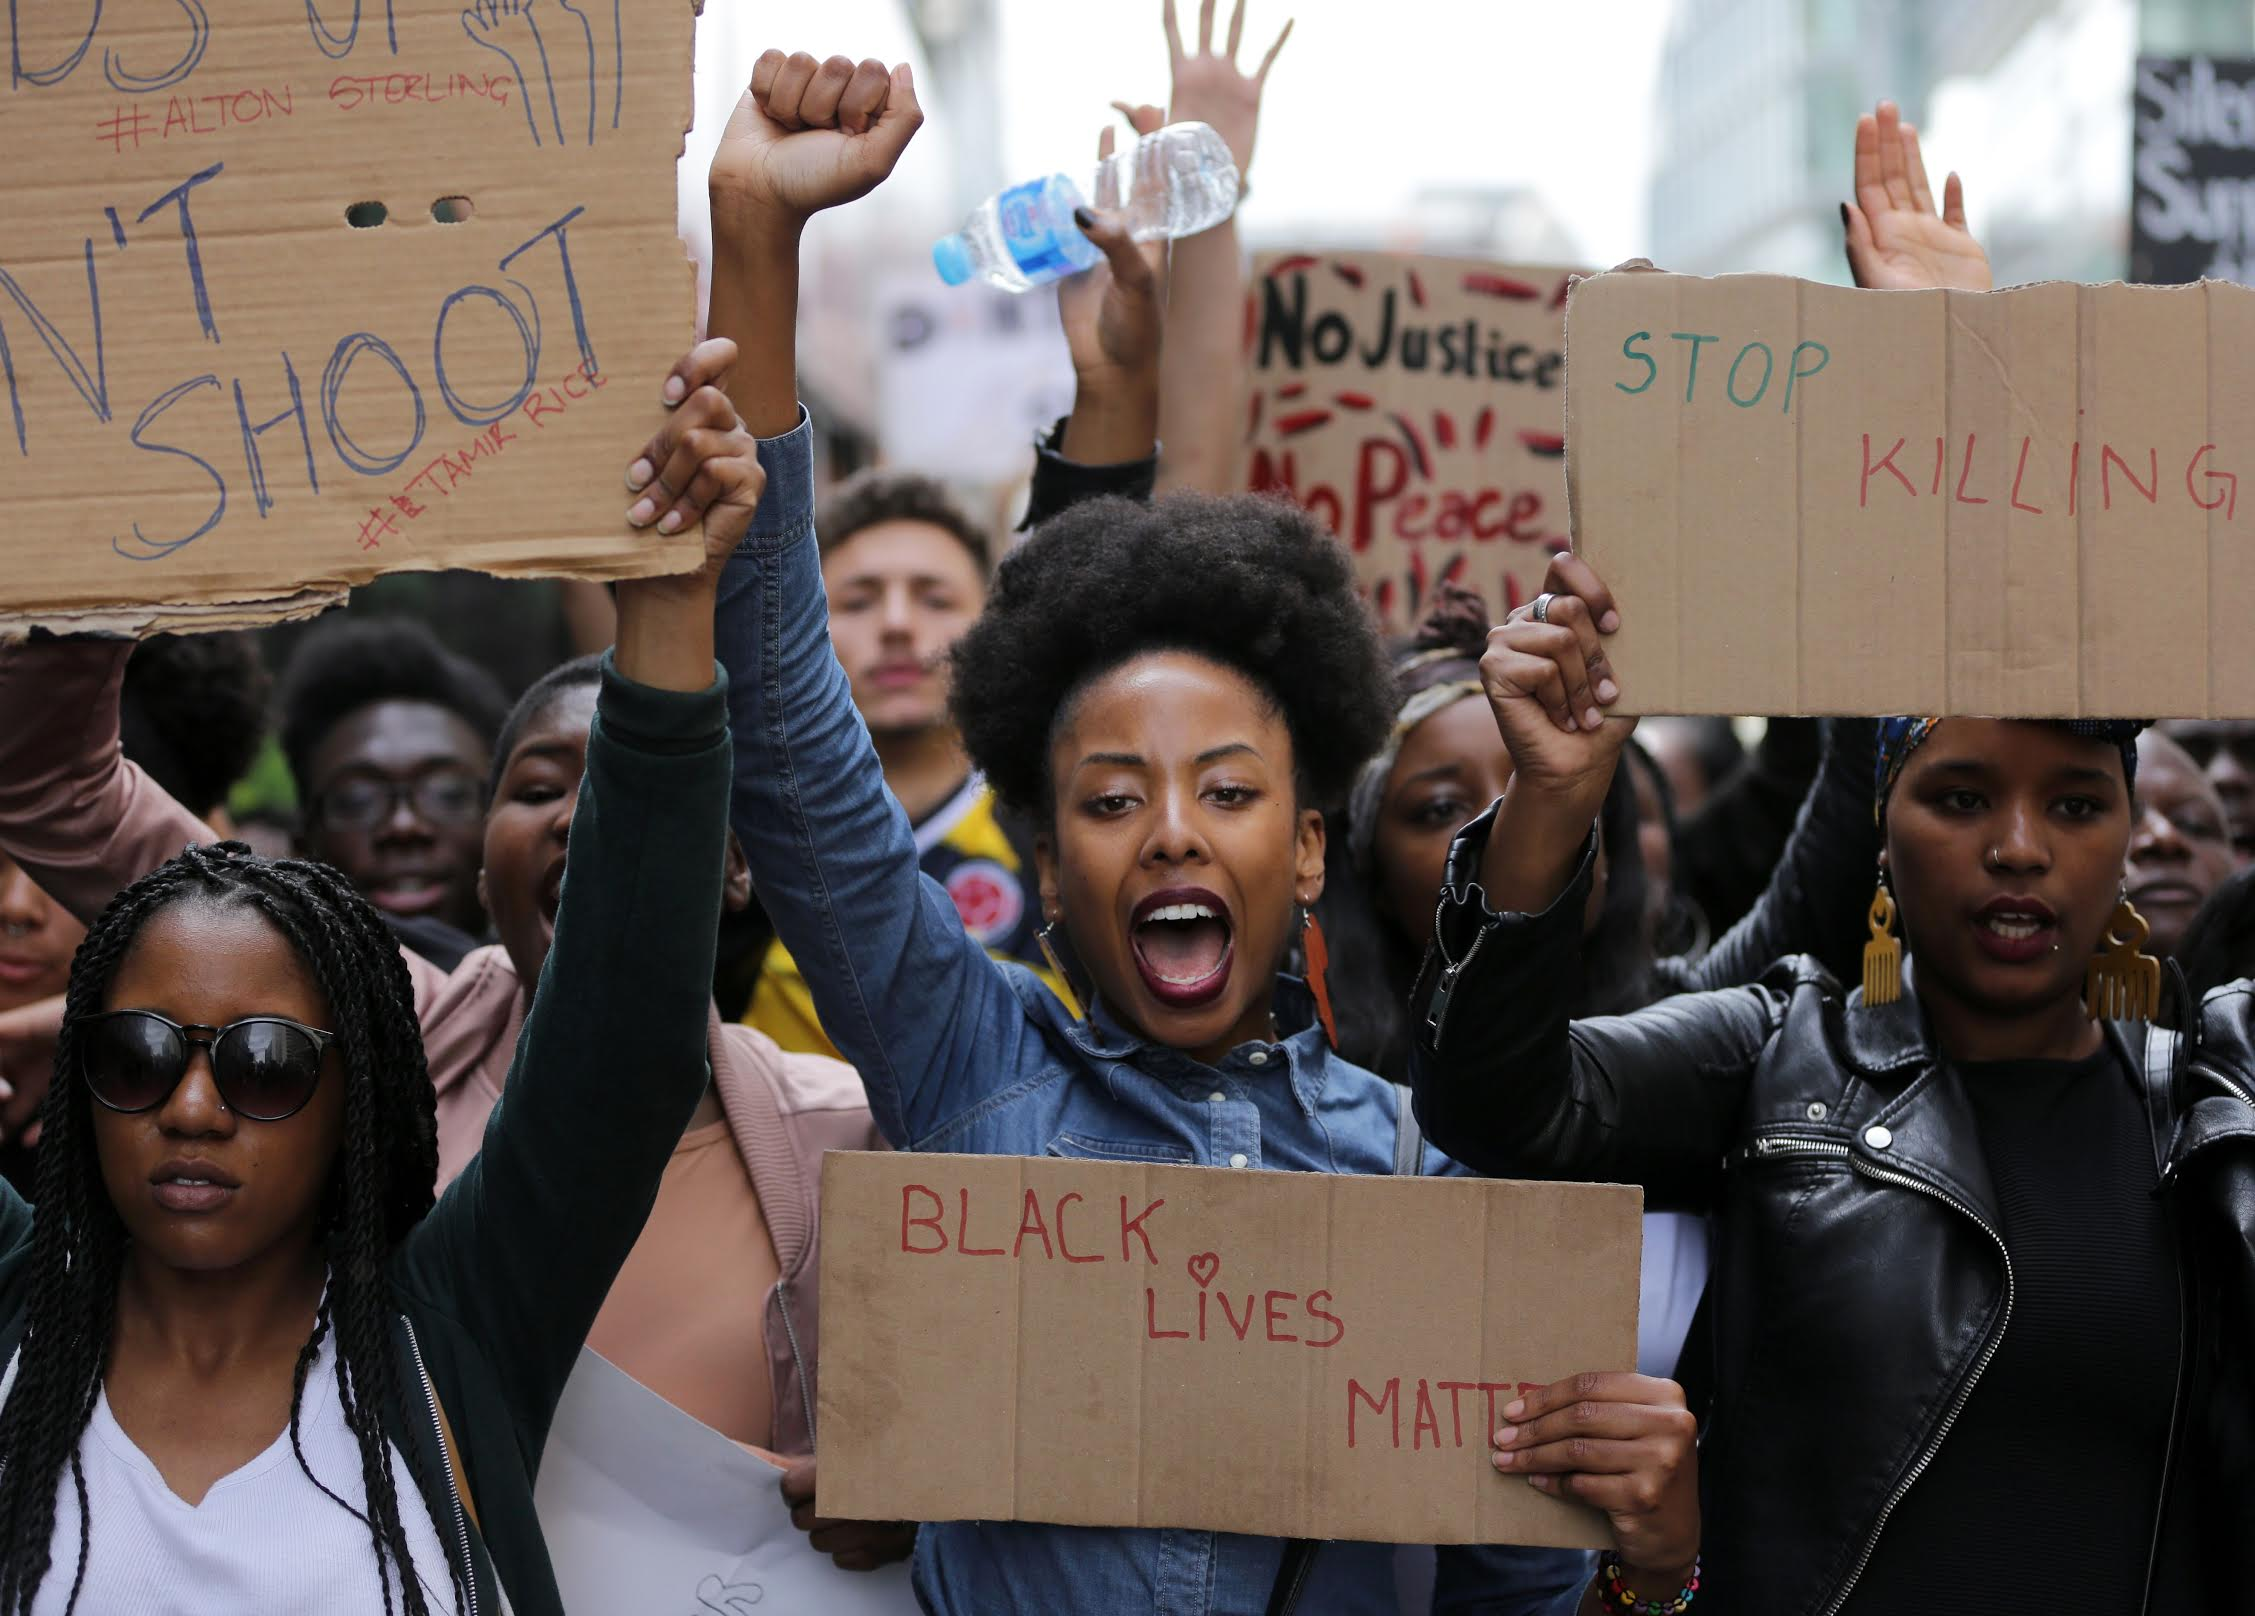 photograph of a protesters holding signs and raising their fists during a Black Lives Matter protest